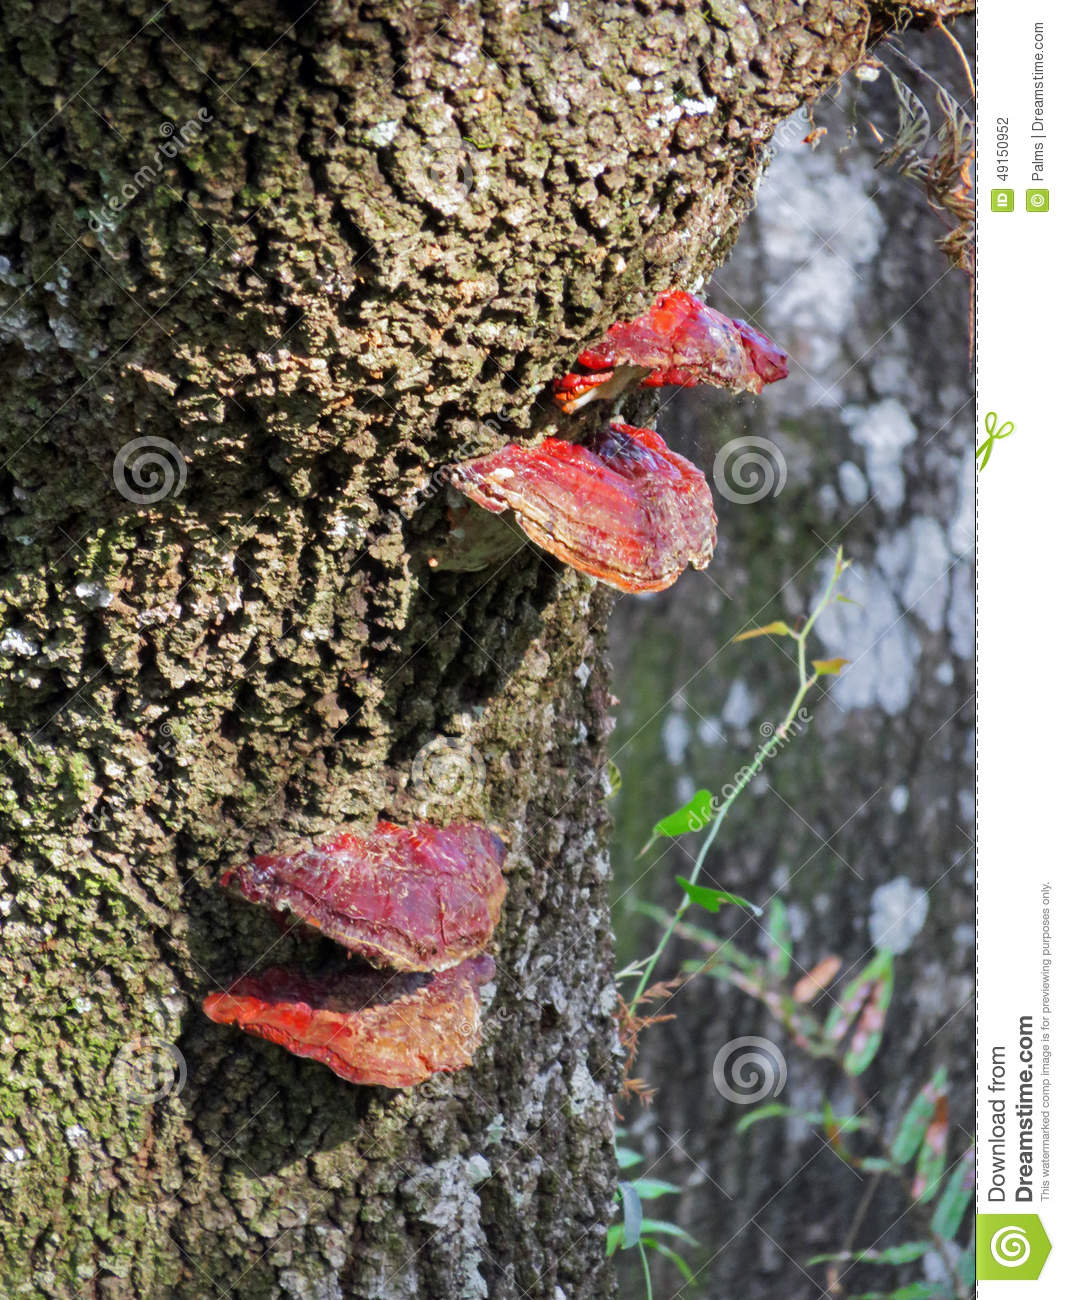 Red lichen on a tree trunk